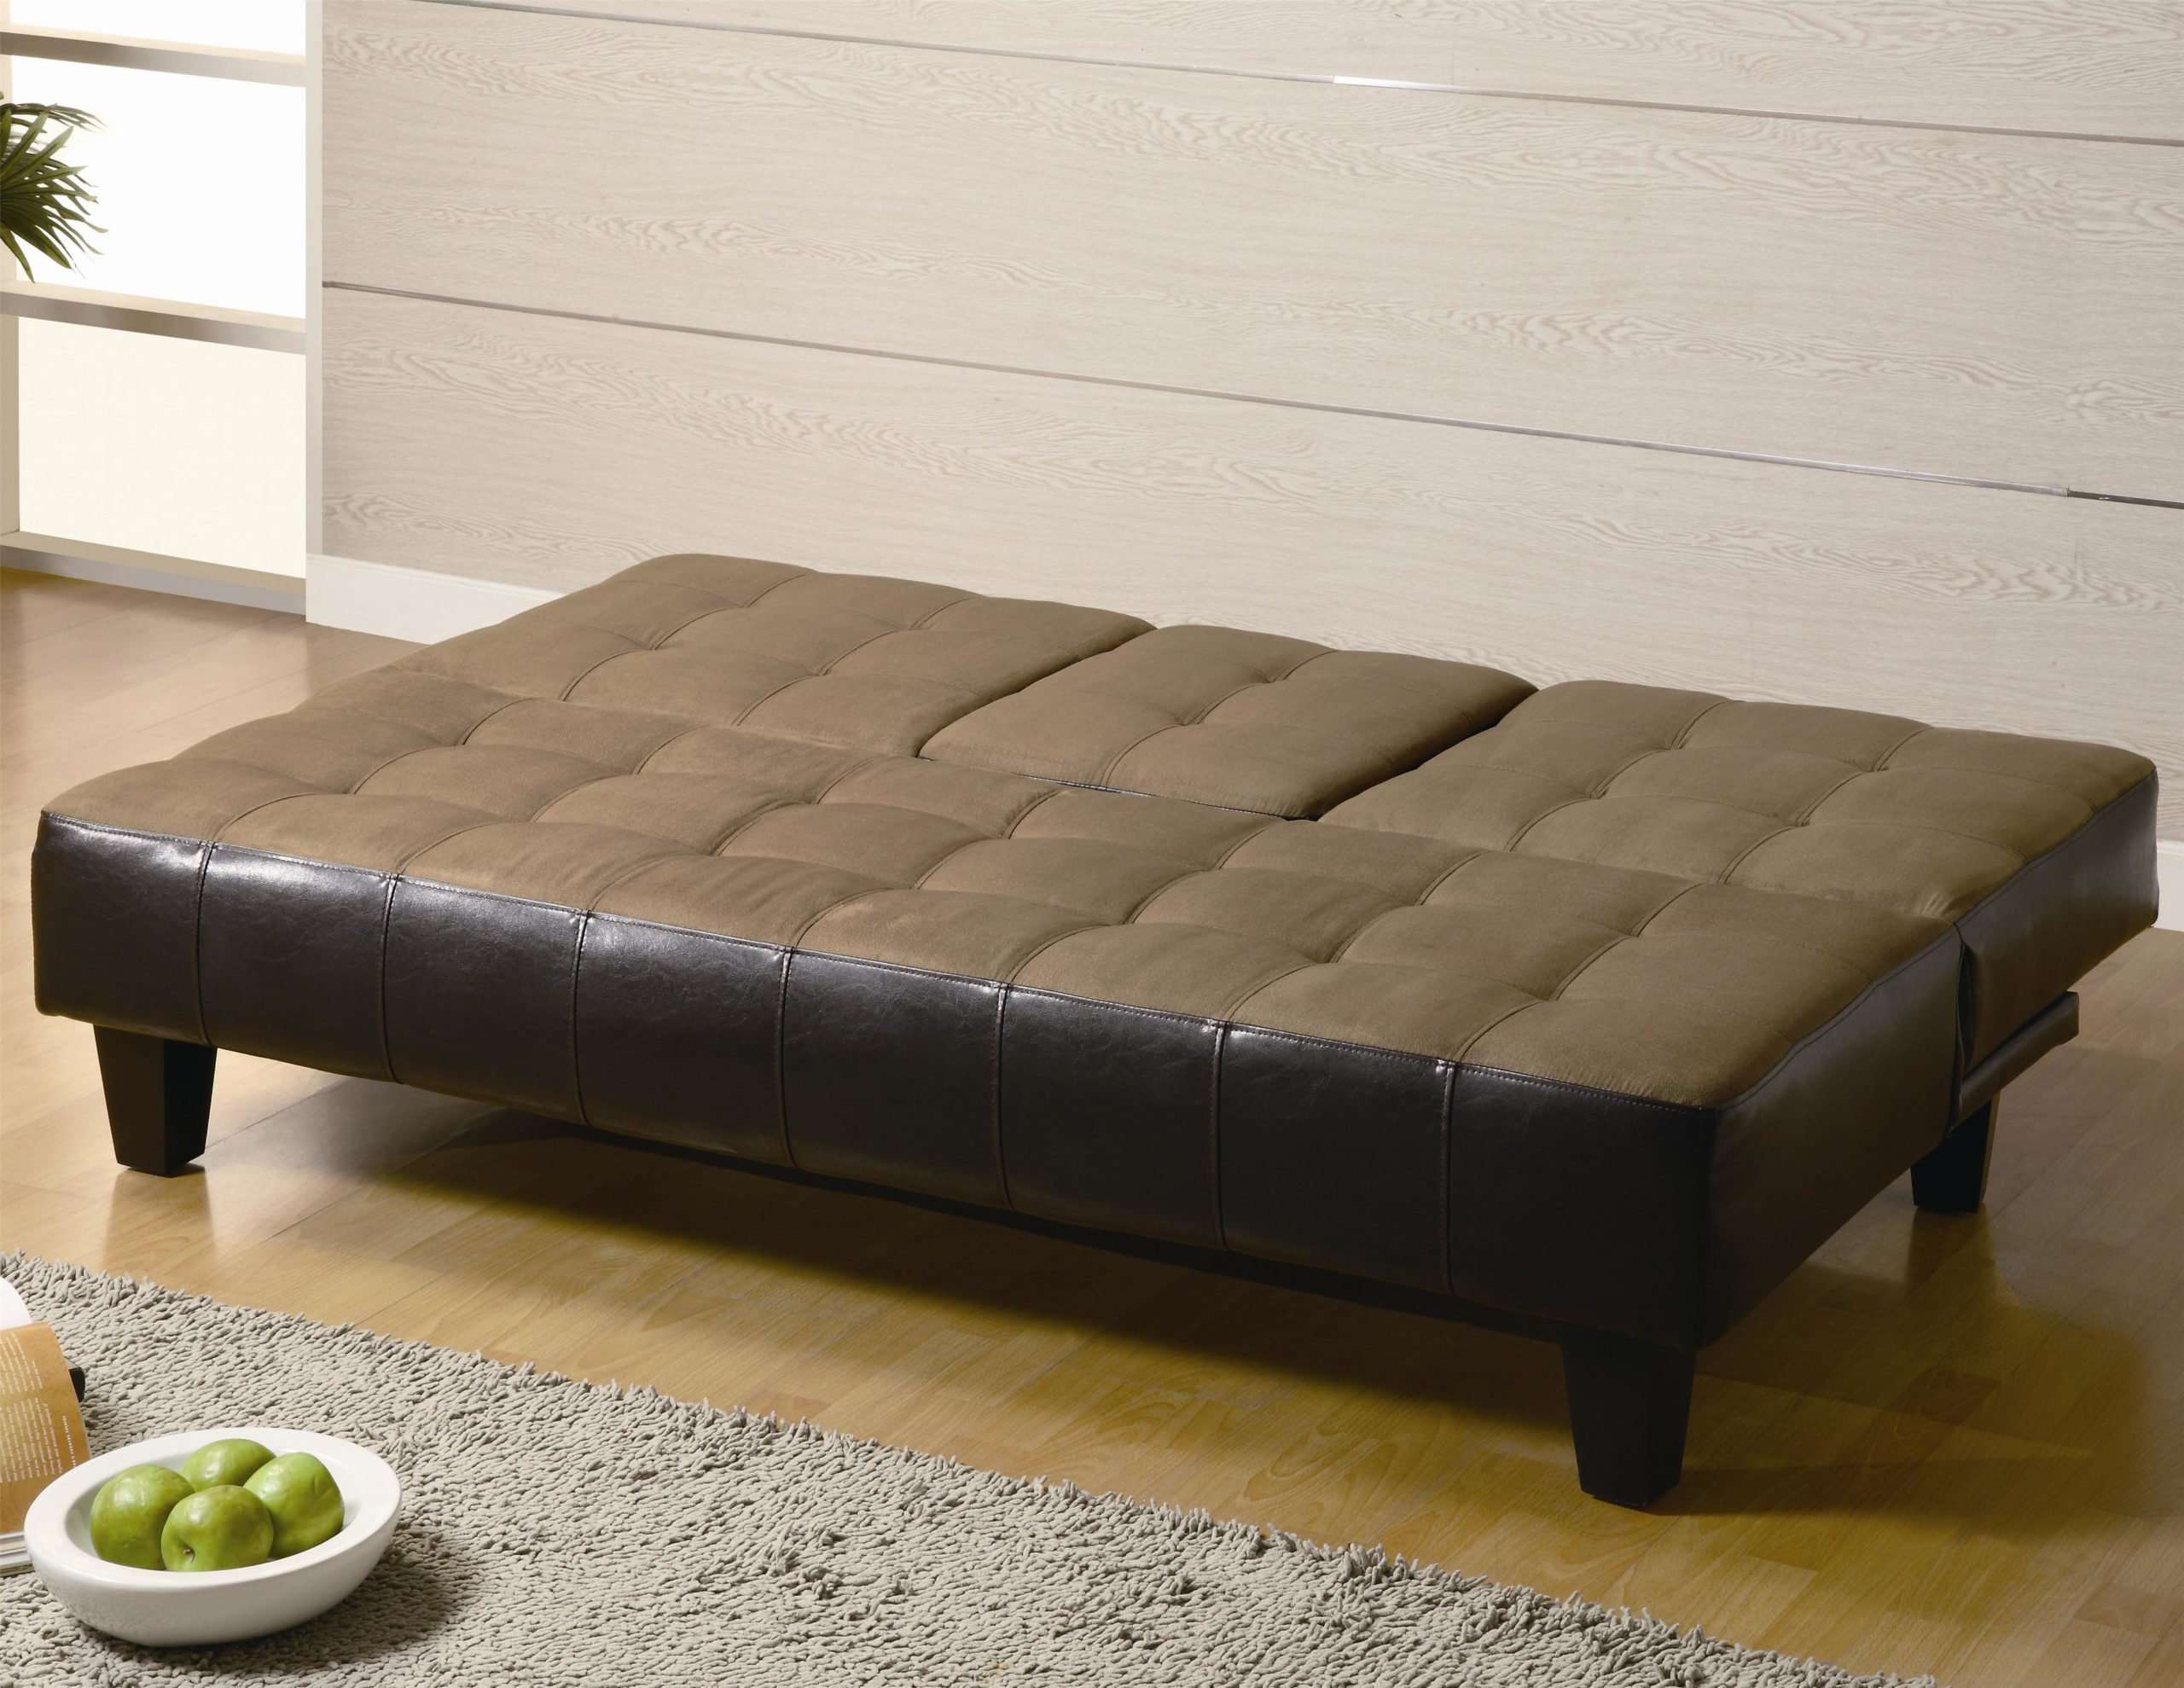 Contemporary Two Tone Convertible Sofa Bed with Drop Down Console in down position